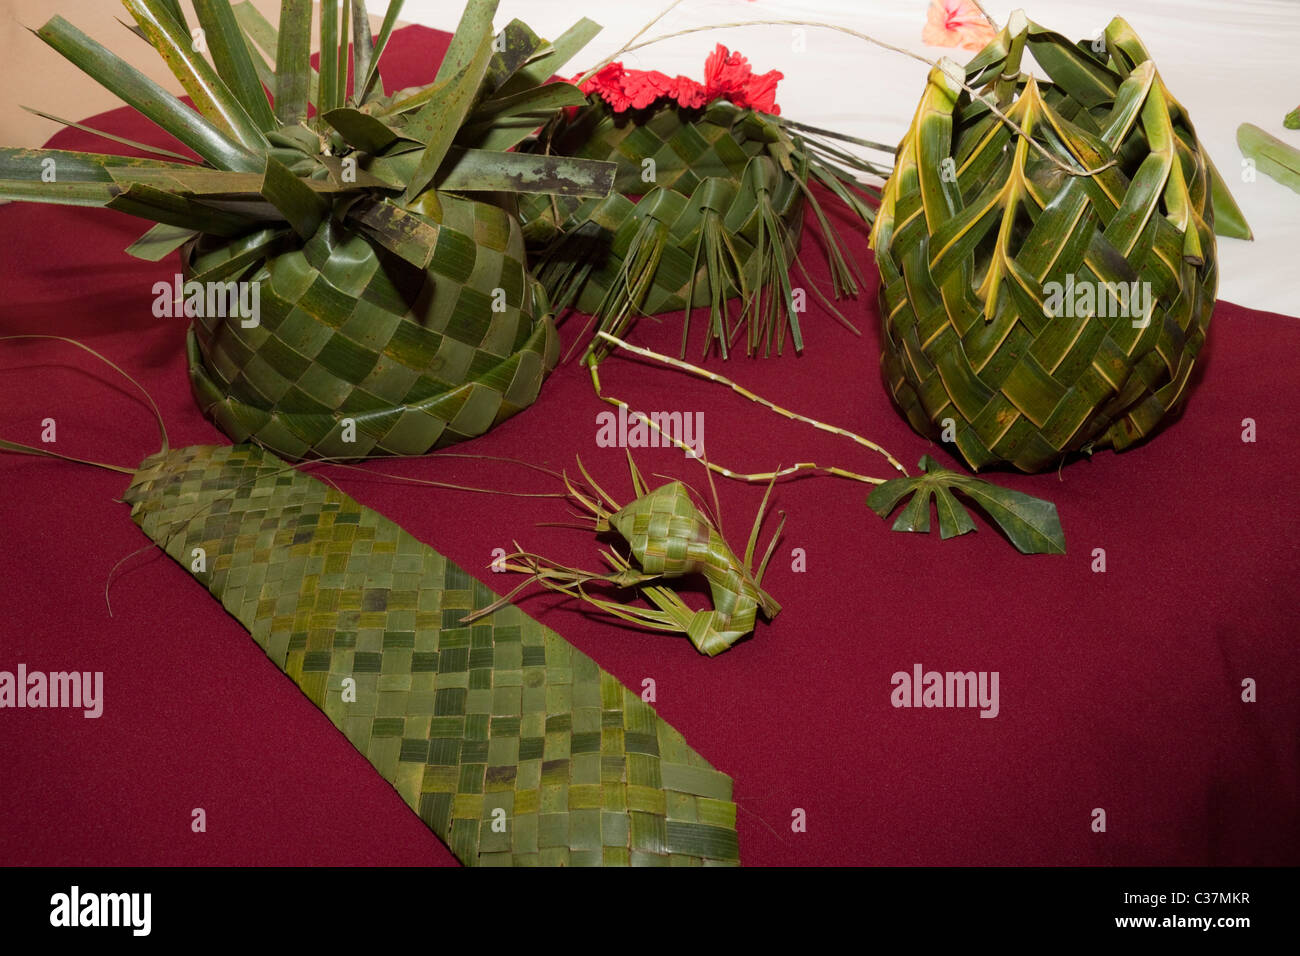 Gifts of a hat,basket,tie and jewelery woven from palm leaves - Stock Image